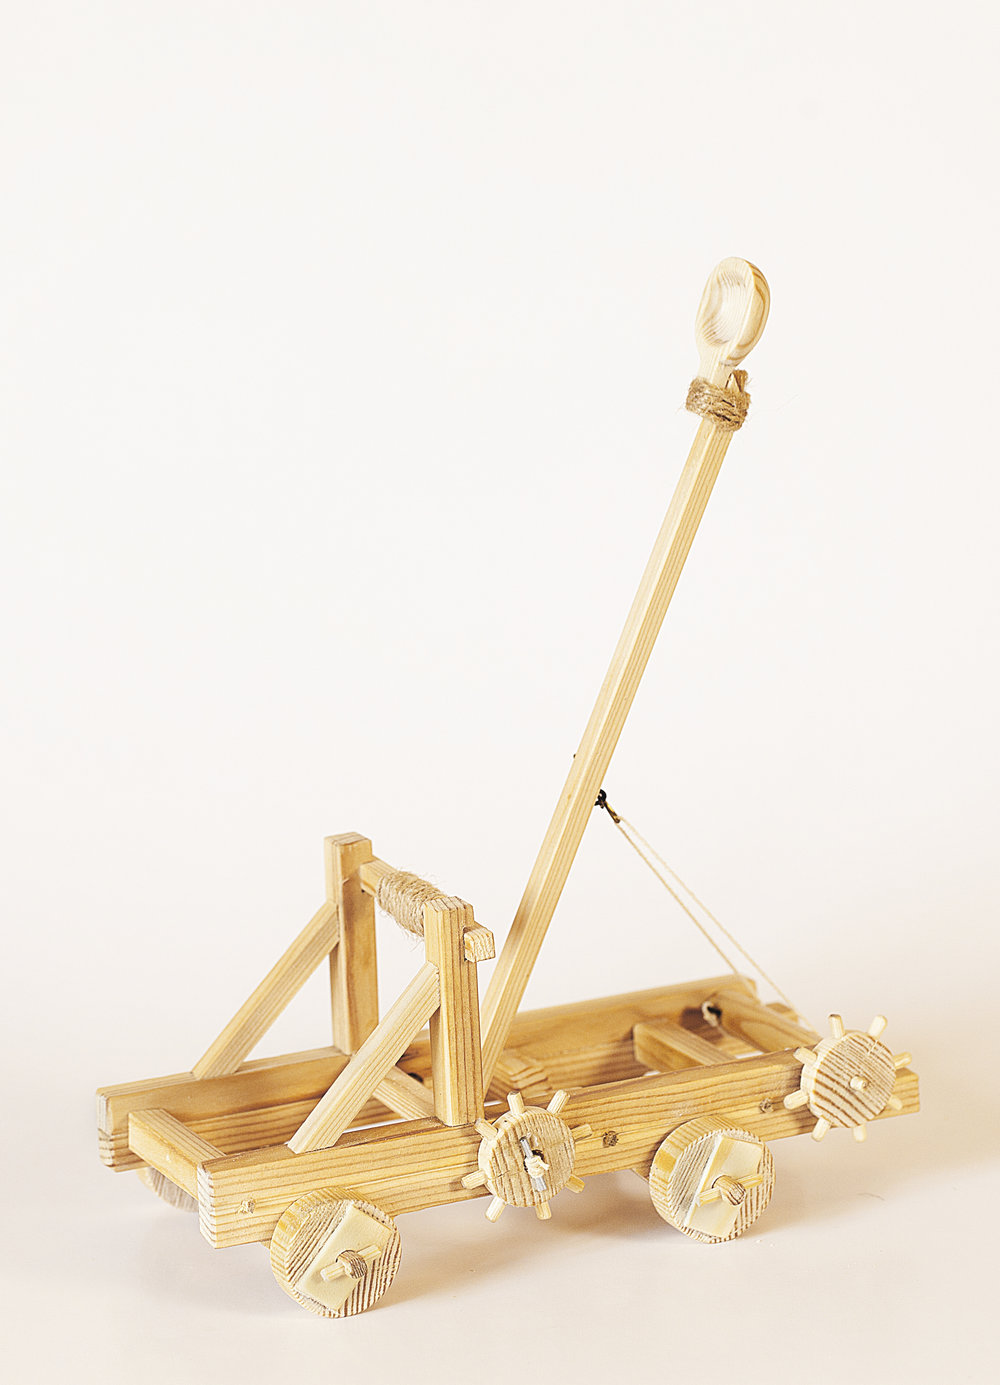 Catapult Build 1